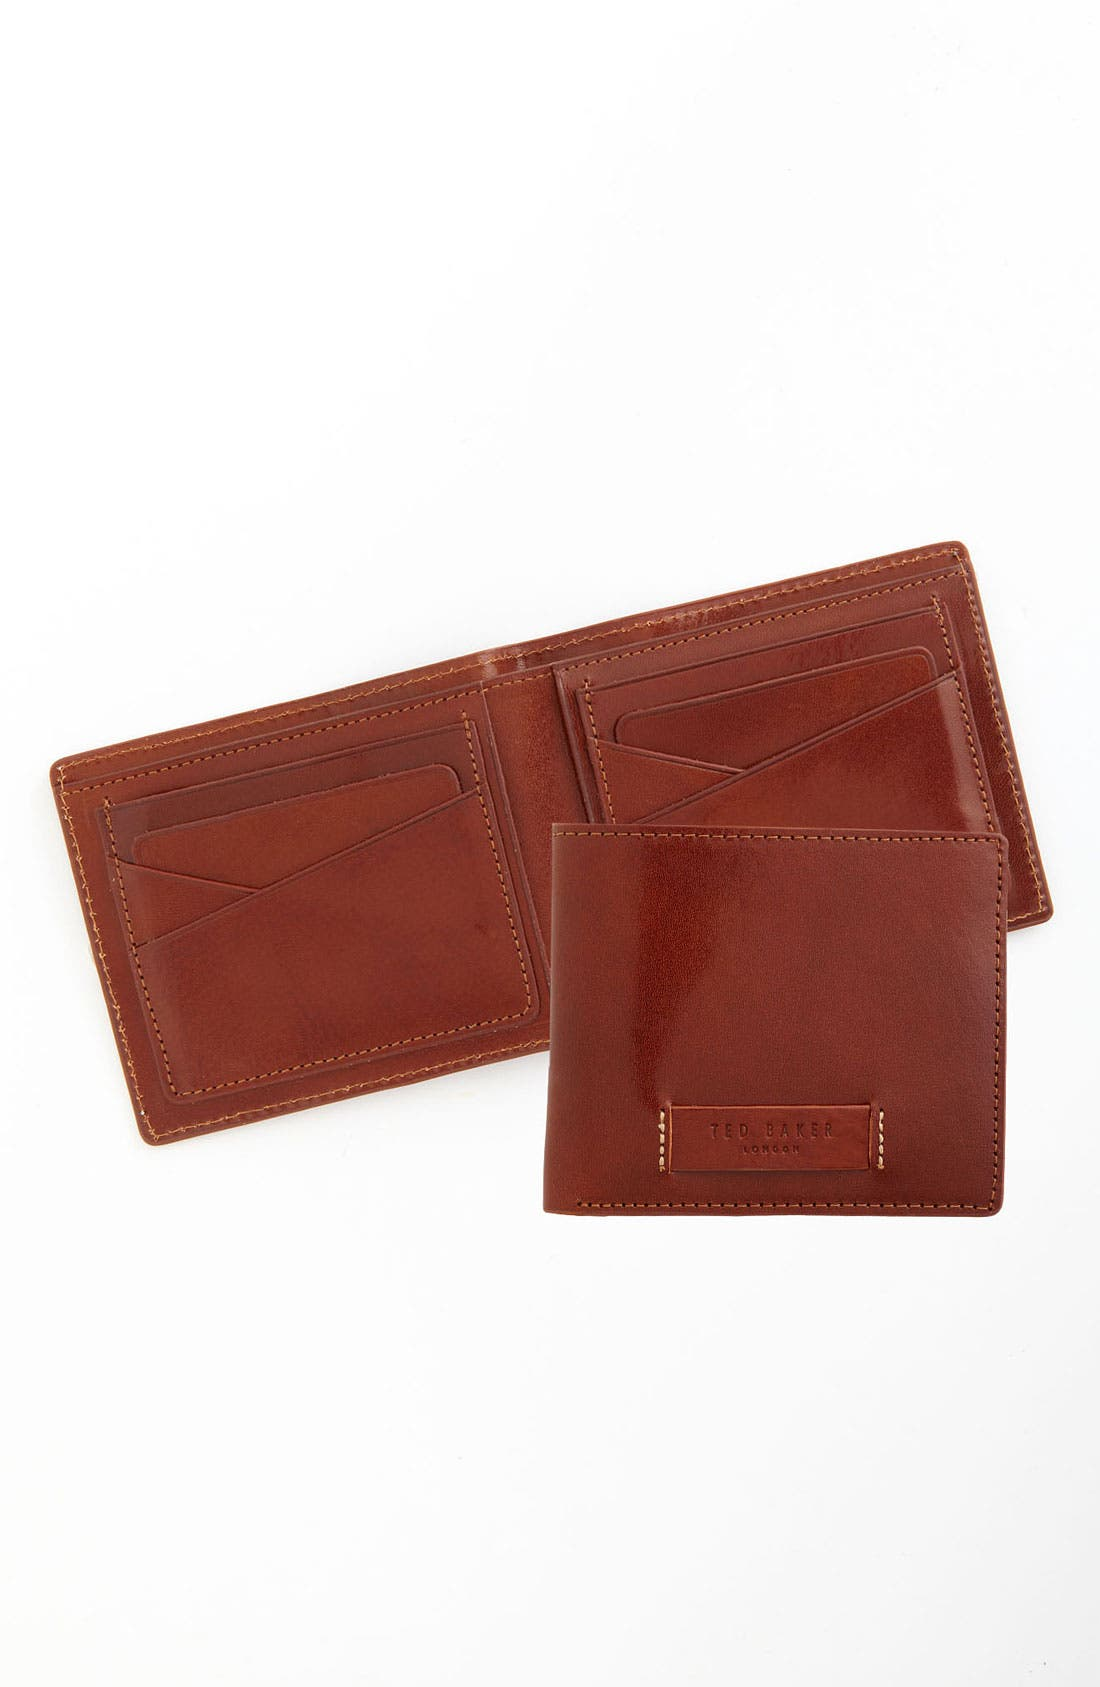 Alternate Image 1 Selected - Ted Baker London 'Raw Edge' Wallet